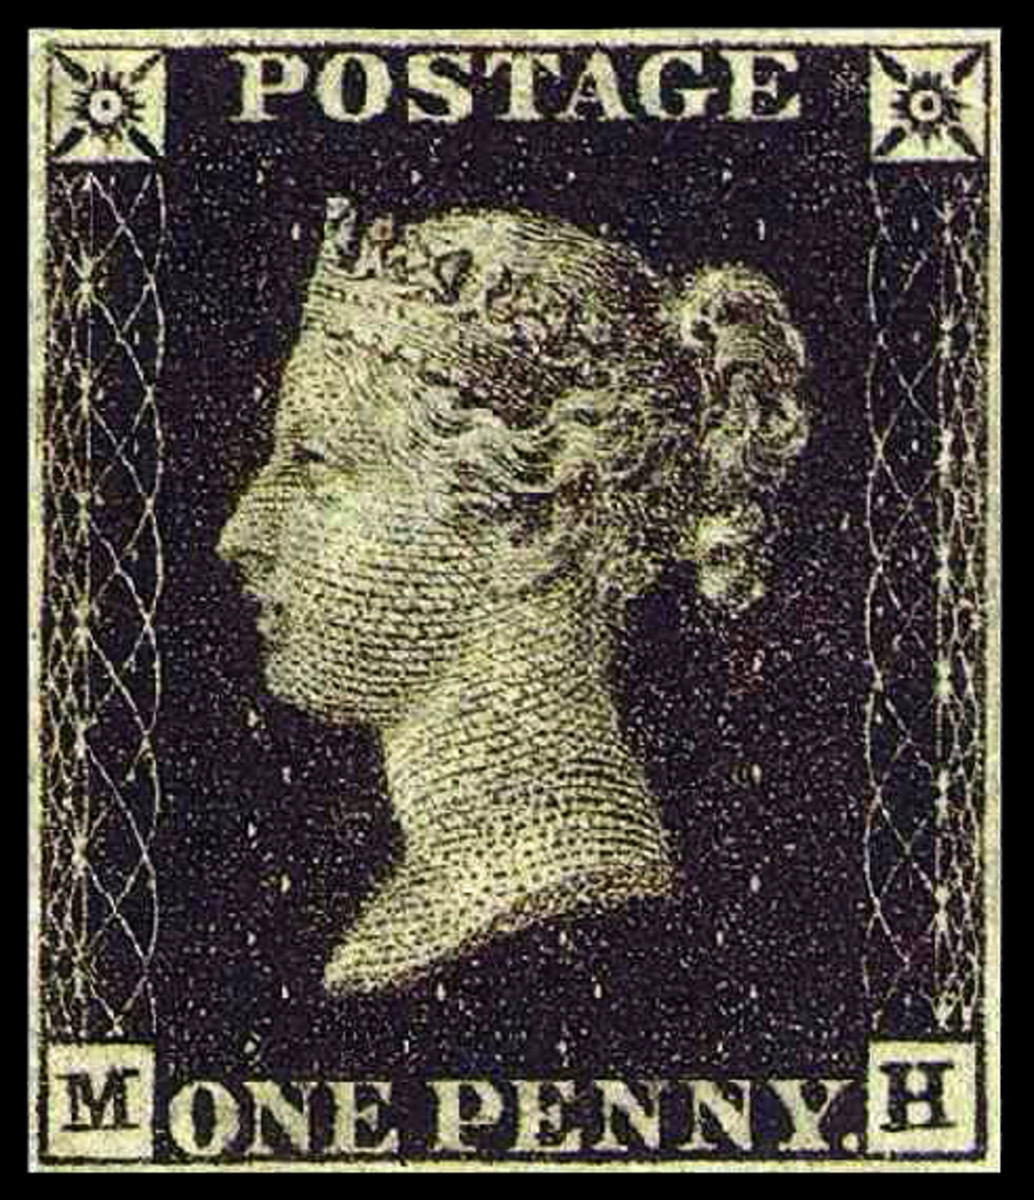 Penny Postage Stamp of 1840 in Great Britain was the first postage stamp issued. The Young Beautiful Girl is queen Victoria